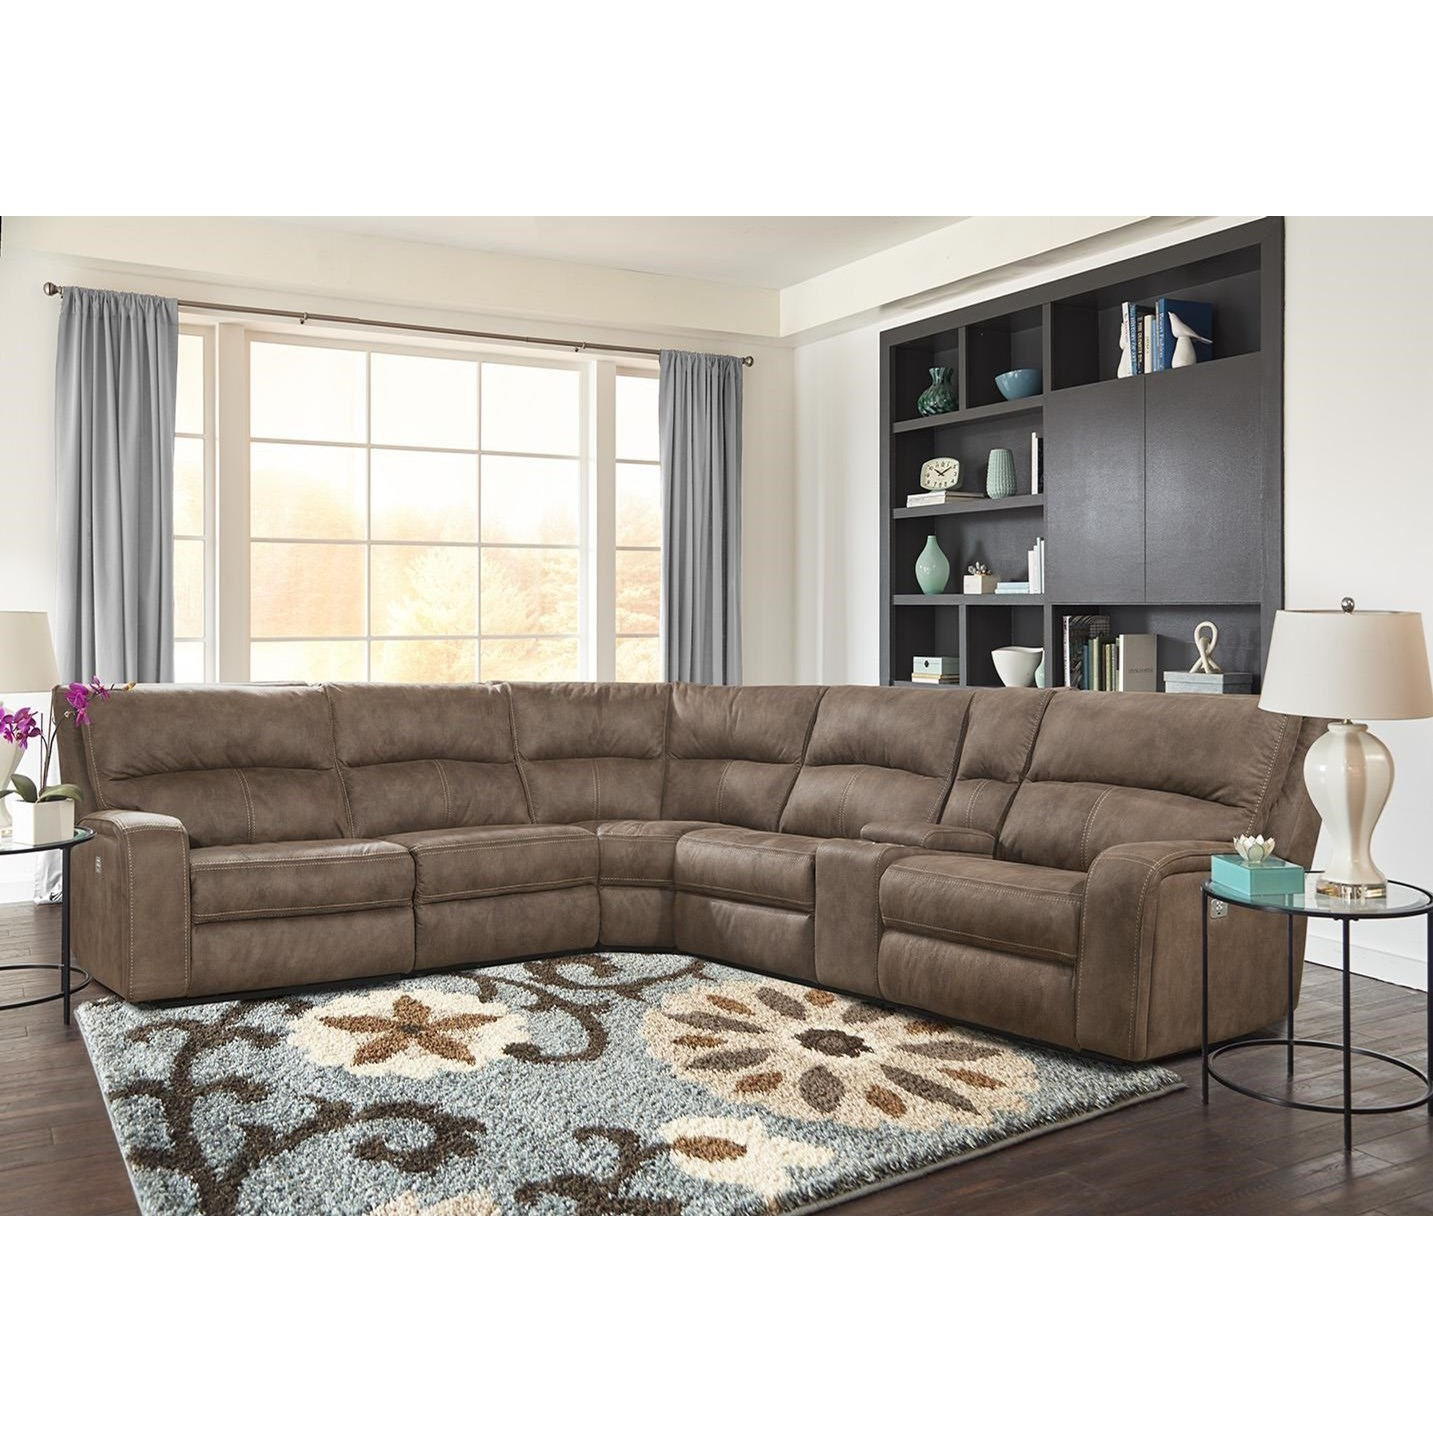 sofa rph roche bobois copy kahlua power reclining sectional with headrests and